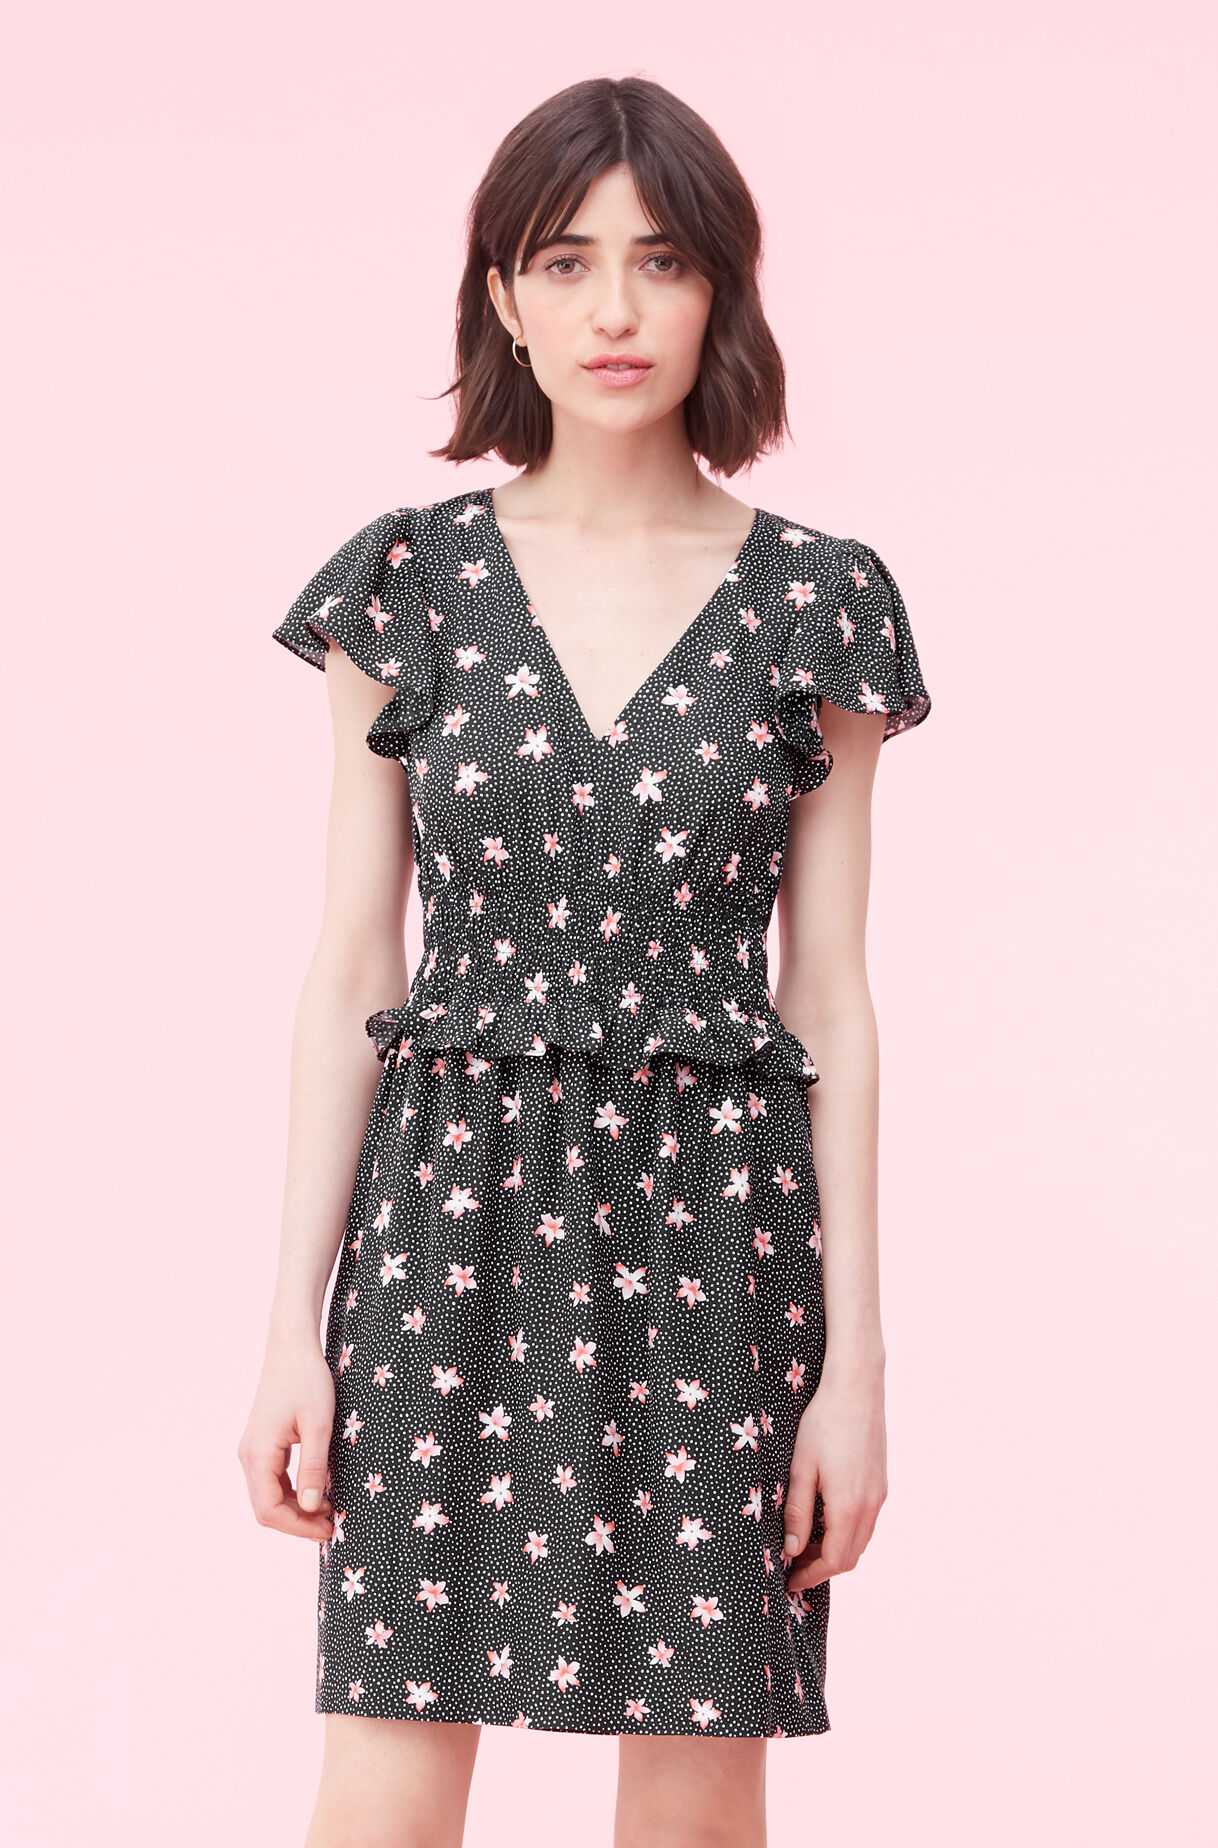 Maui Fleur Dot Jacquard Dress, , large